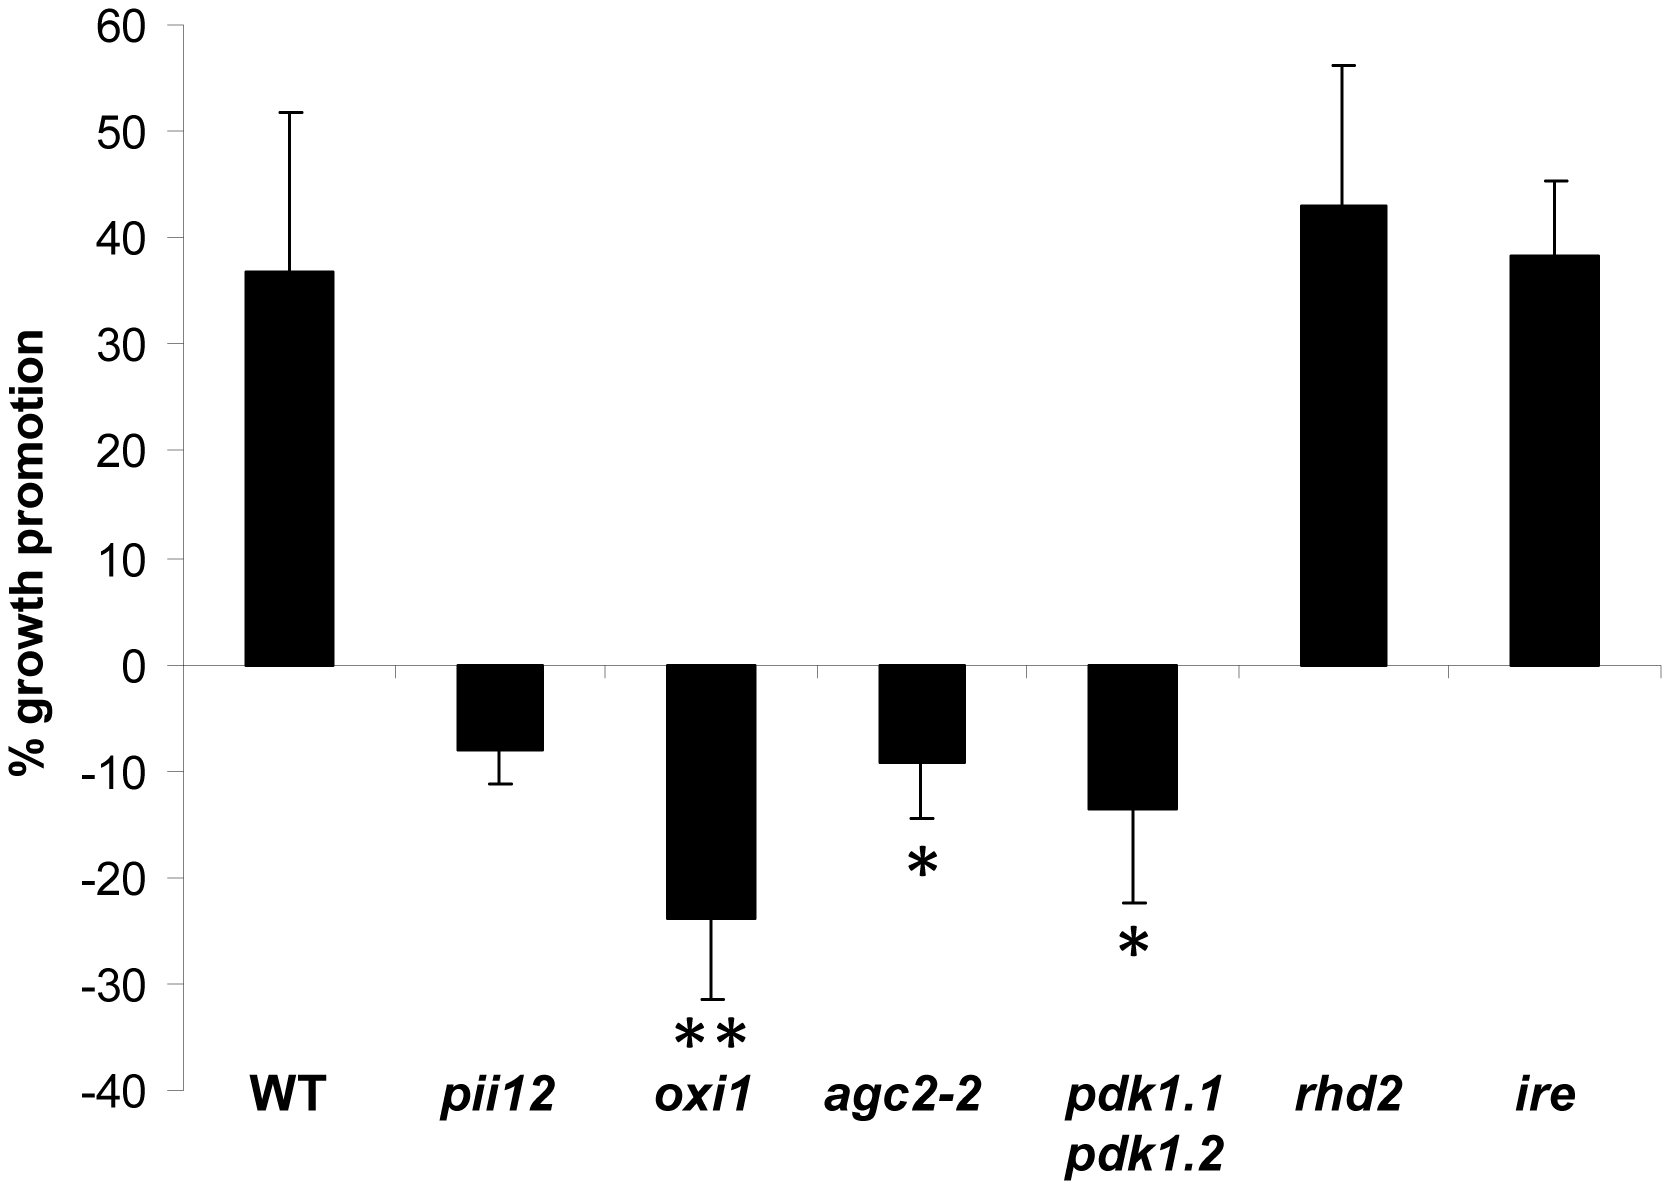 <i>P. indica</i>-mediated increase in fresh weight (%) of wild-type (WT) and mutant plants.